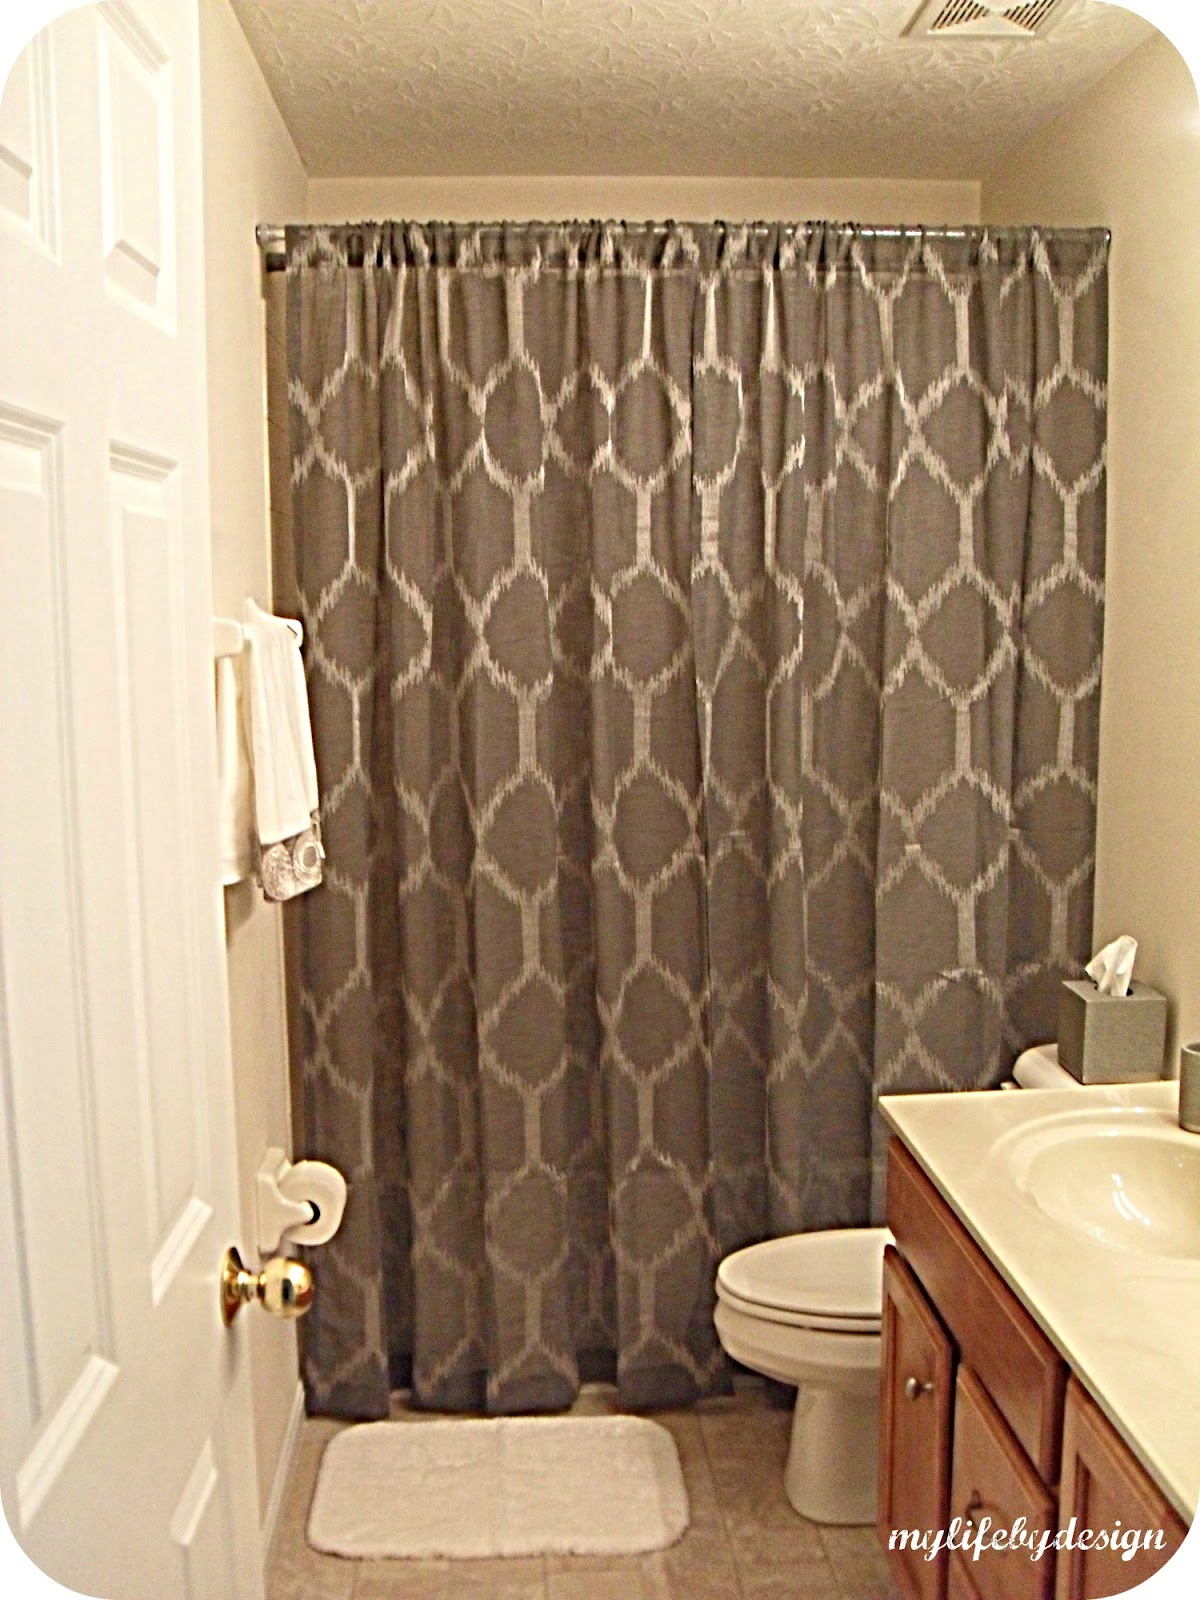 I Hung The Curtain Higher And On Outside Of Tub While Liner Rod Was Lower Inside Shower Area Result